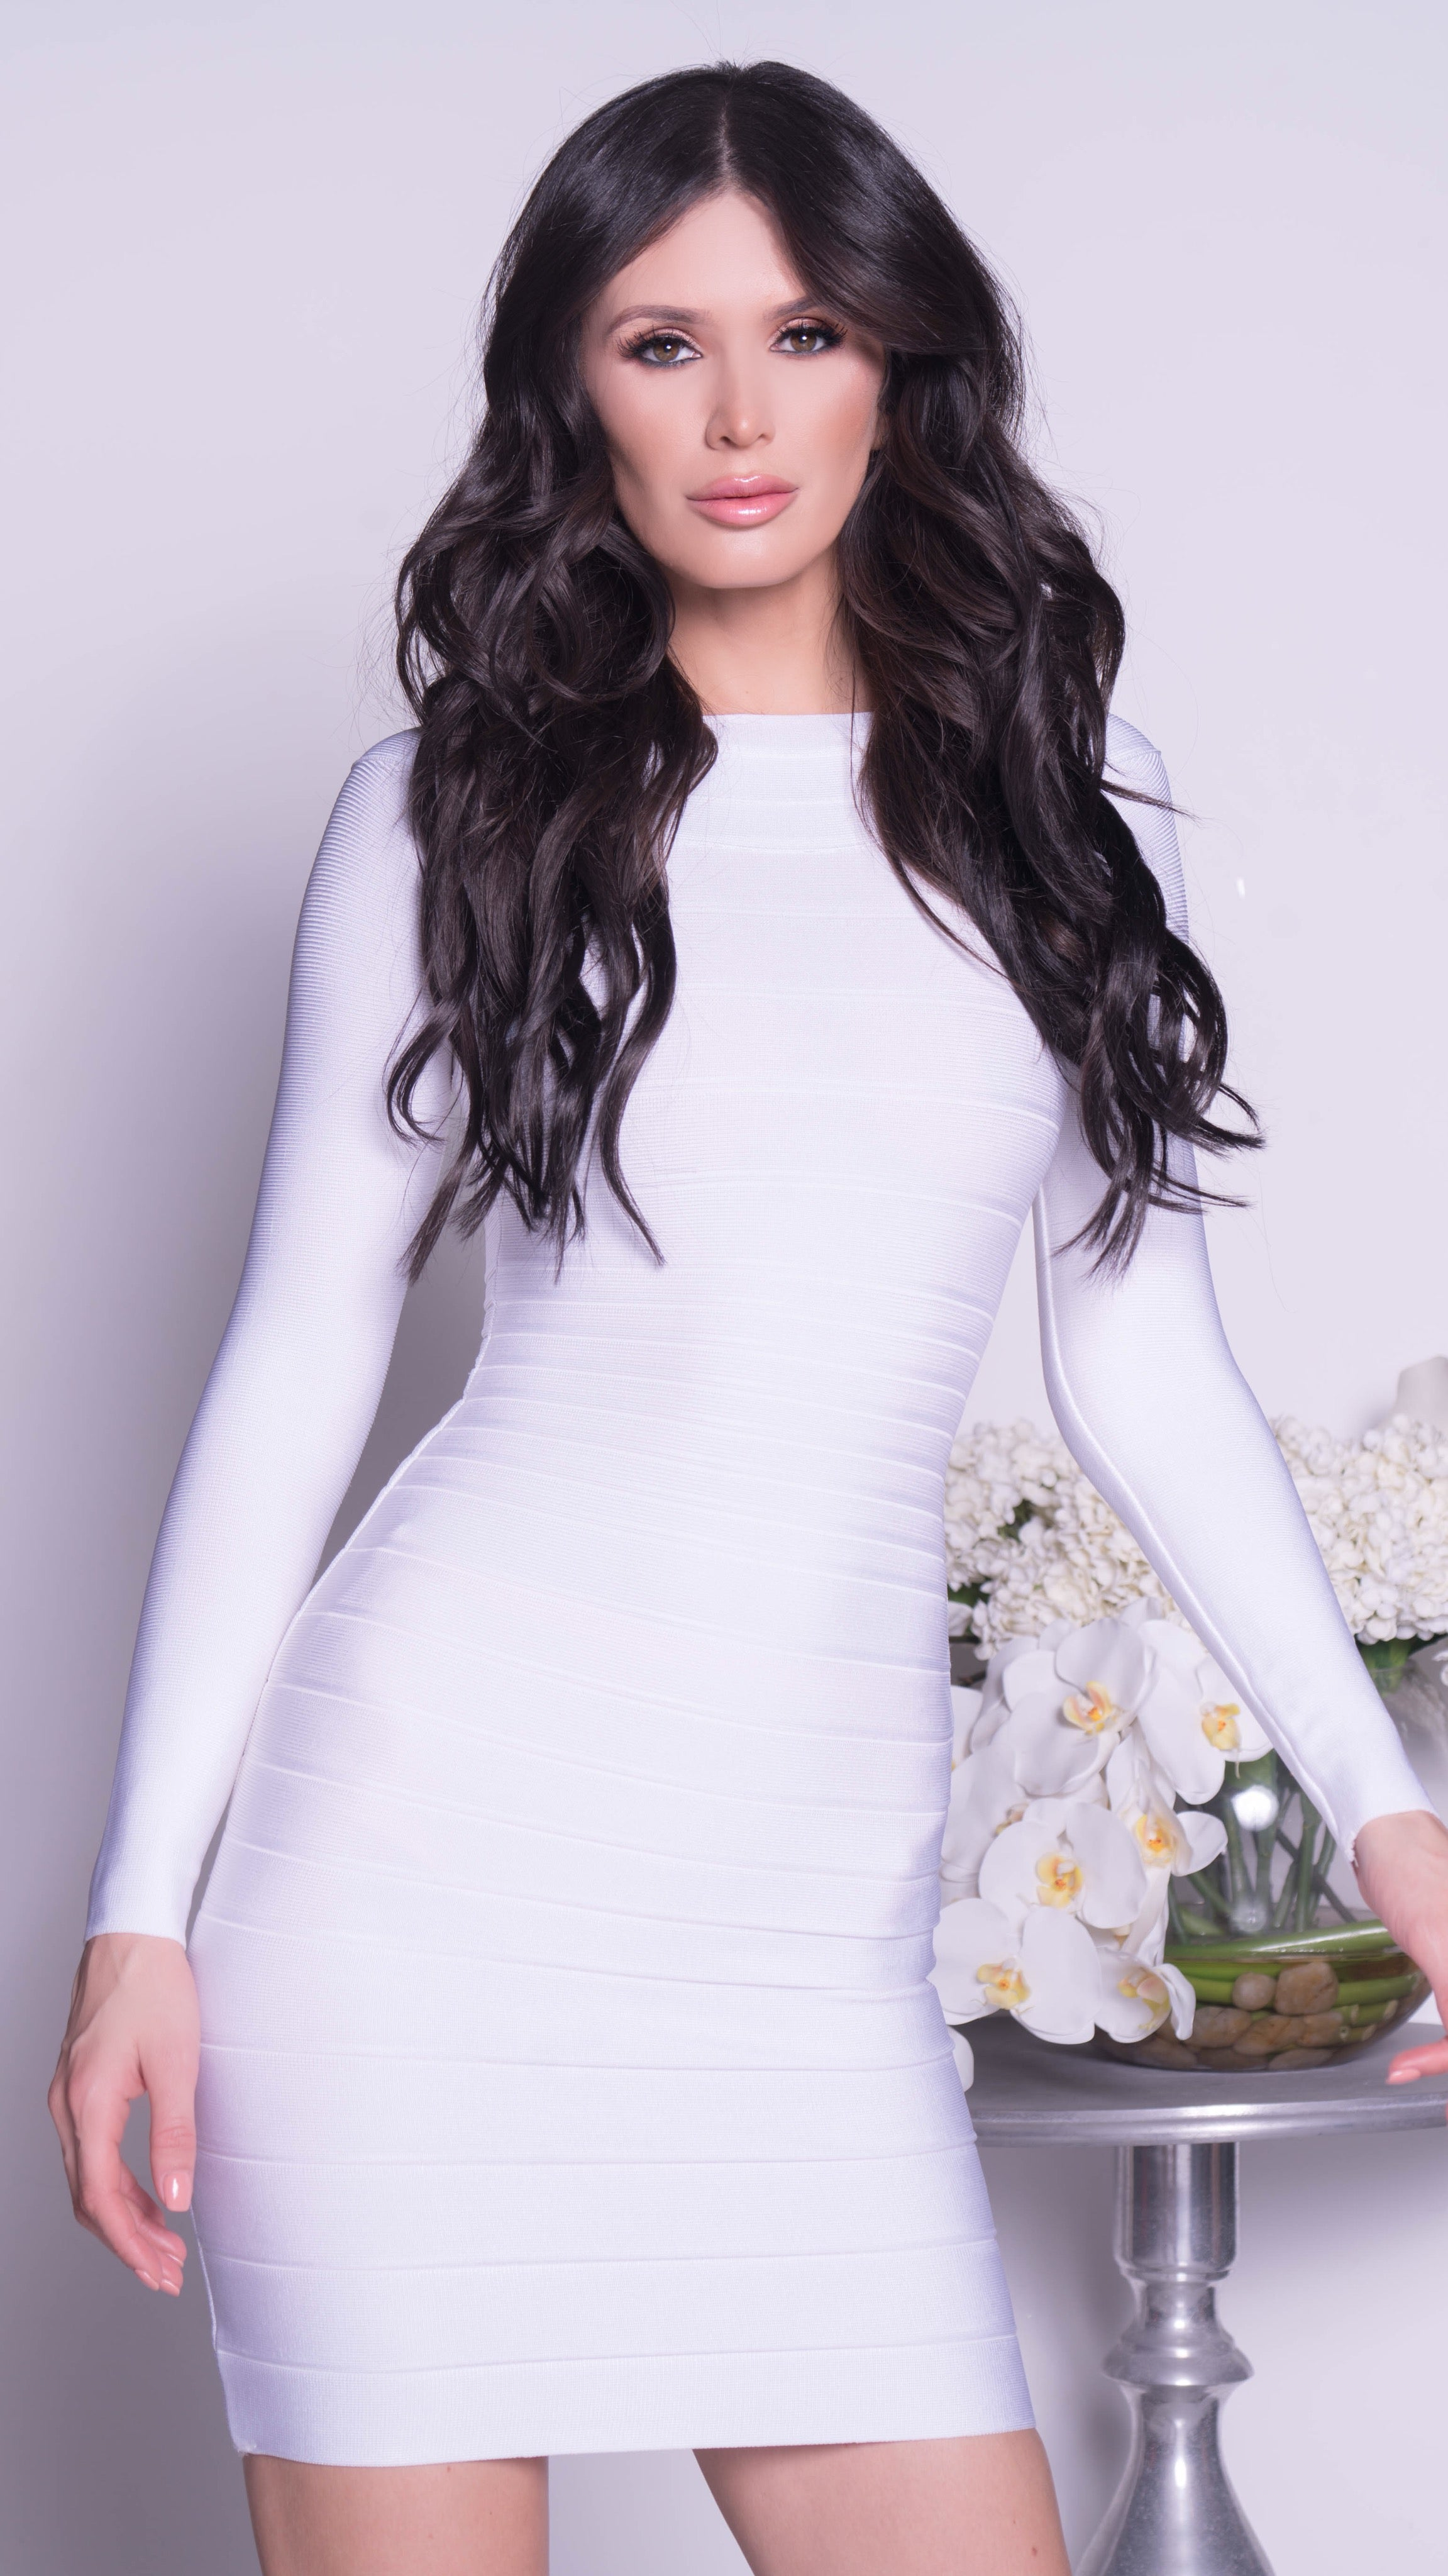 JOANNE BANDAGE DRESS IN WHITE